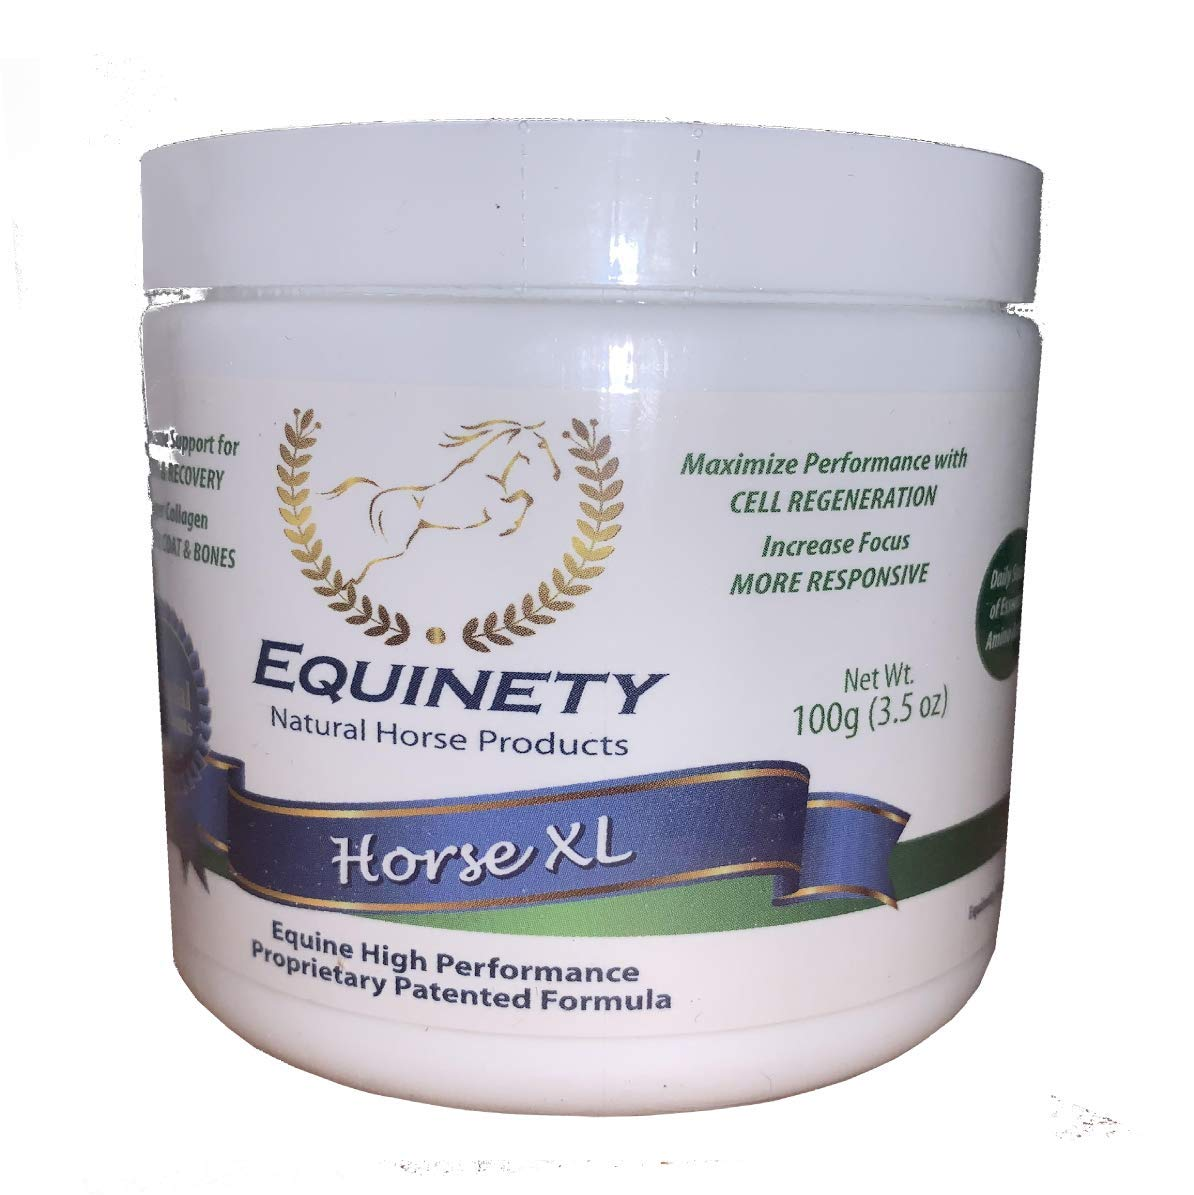 Equinety Horse XL Equine Supplement 3.5 oz